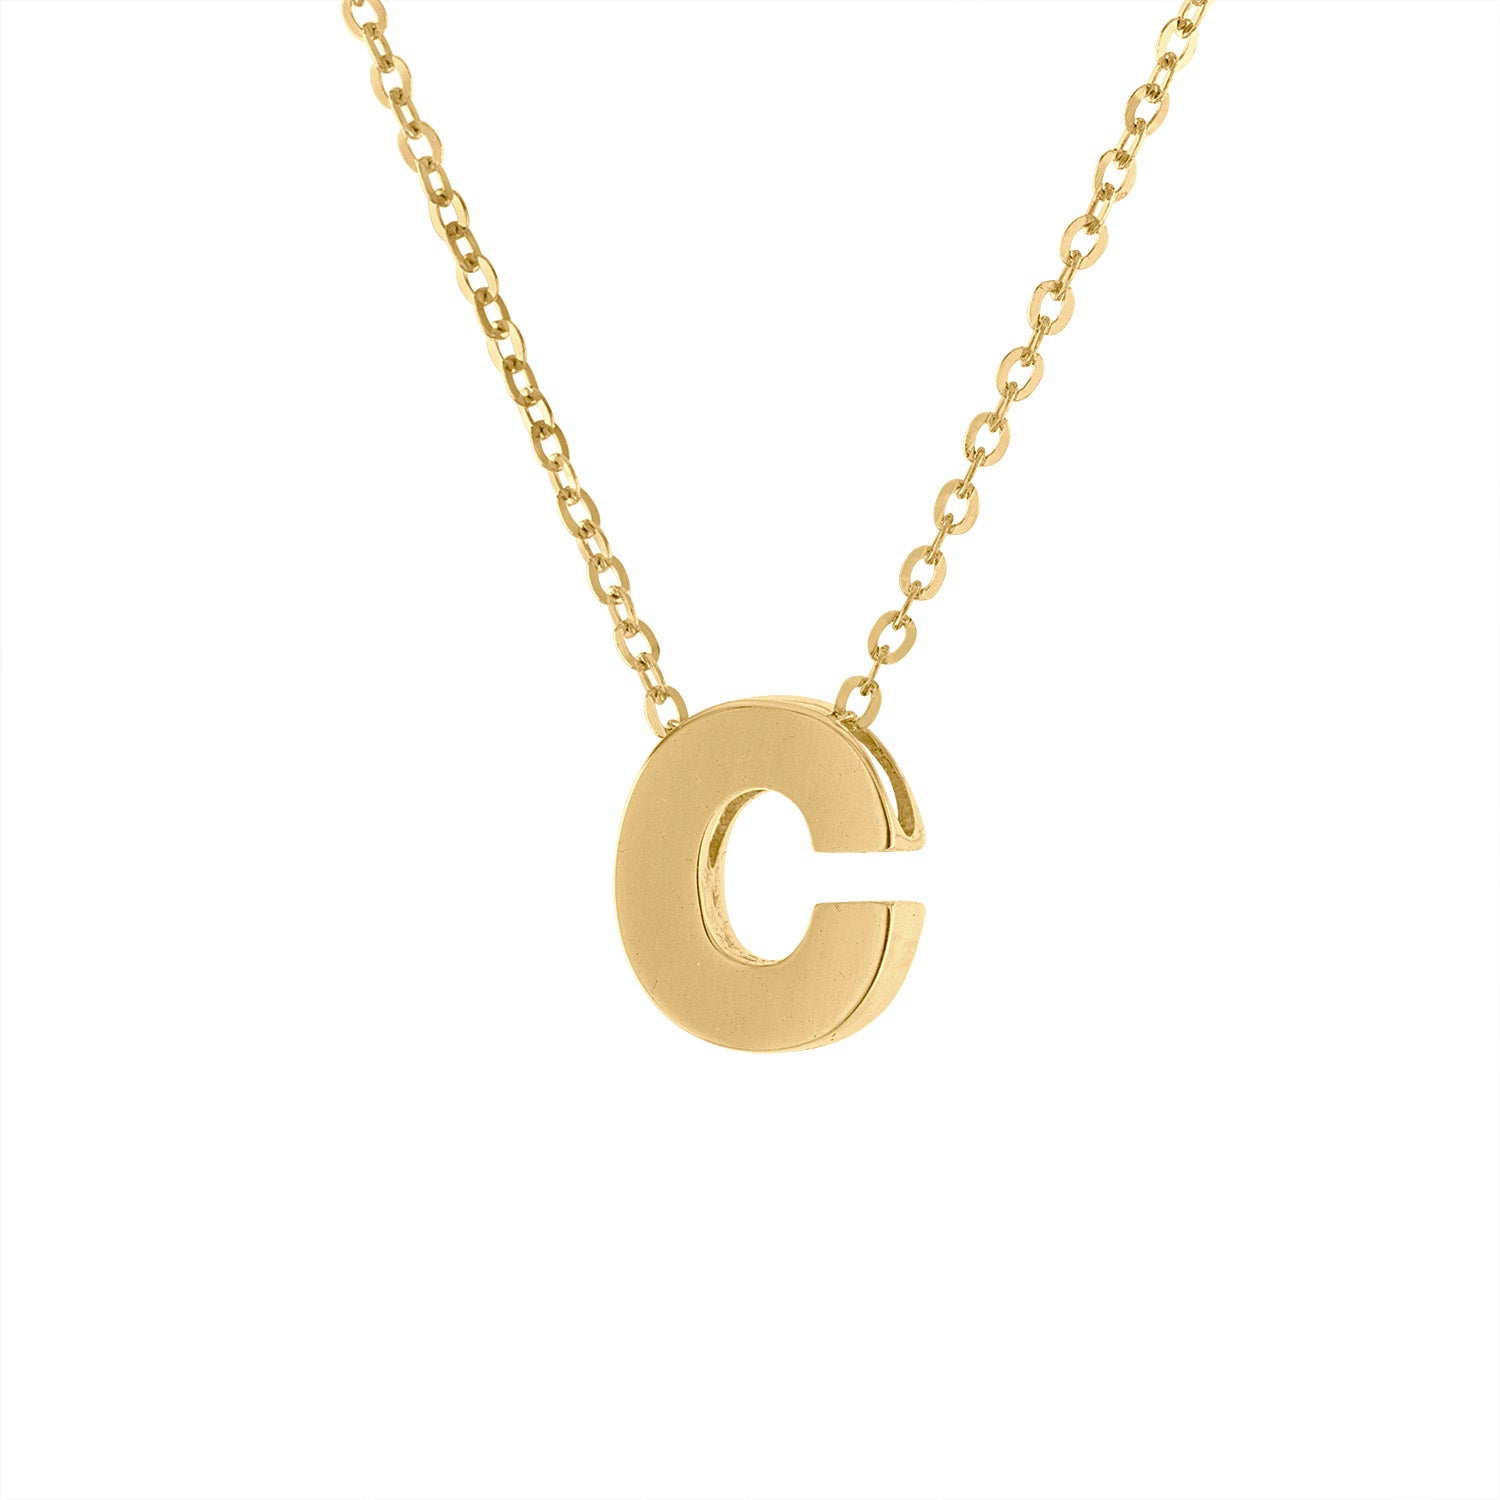 14k Yellow Gold plain initial C necklace